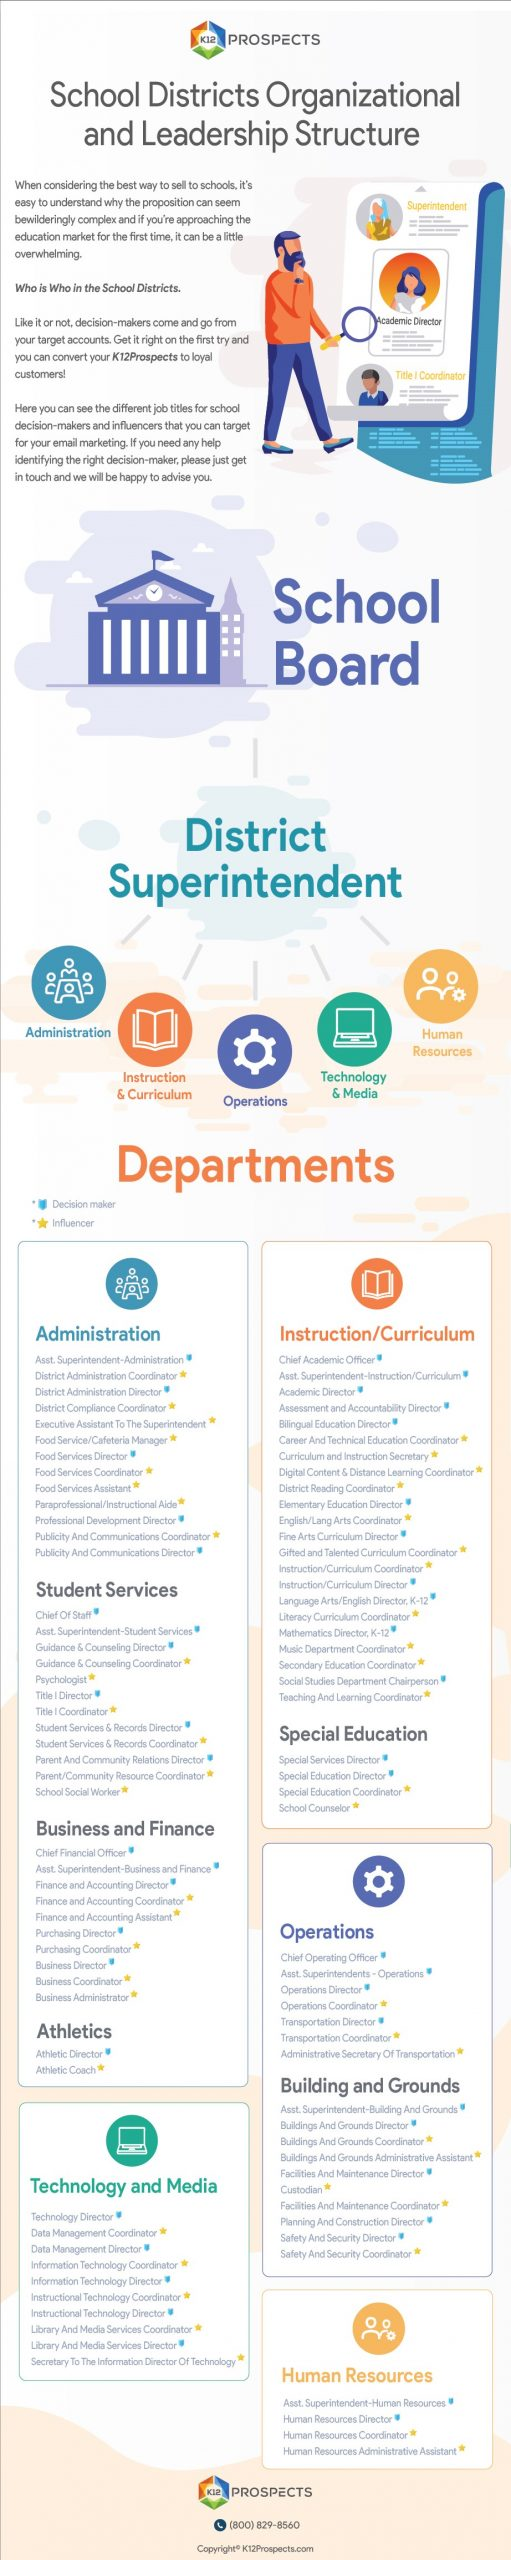 School Districts Organizational Structure and Leadership